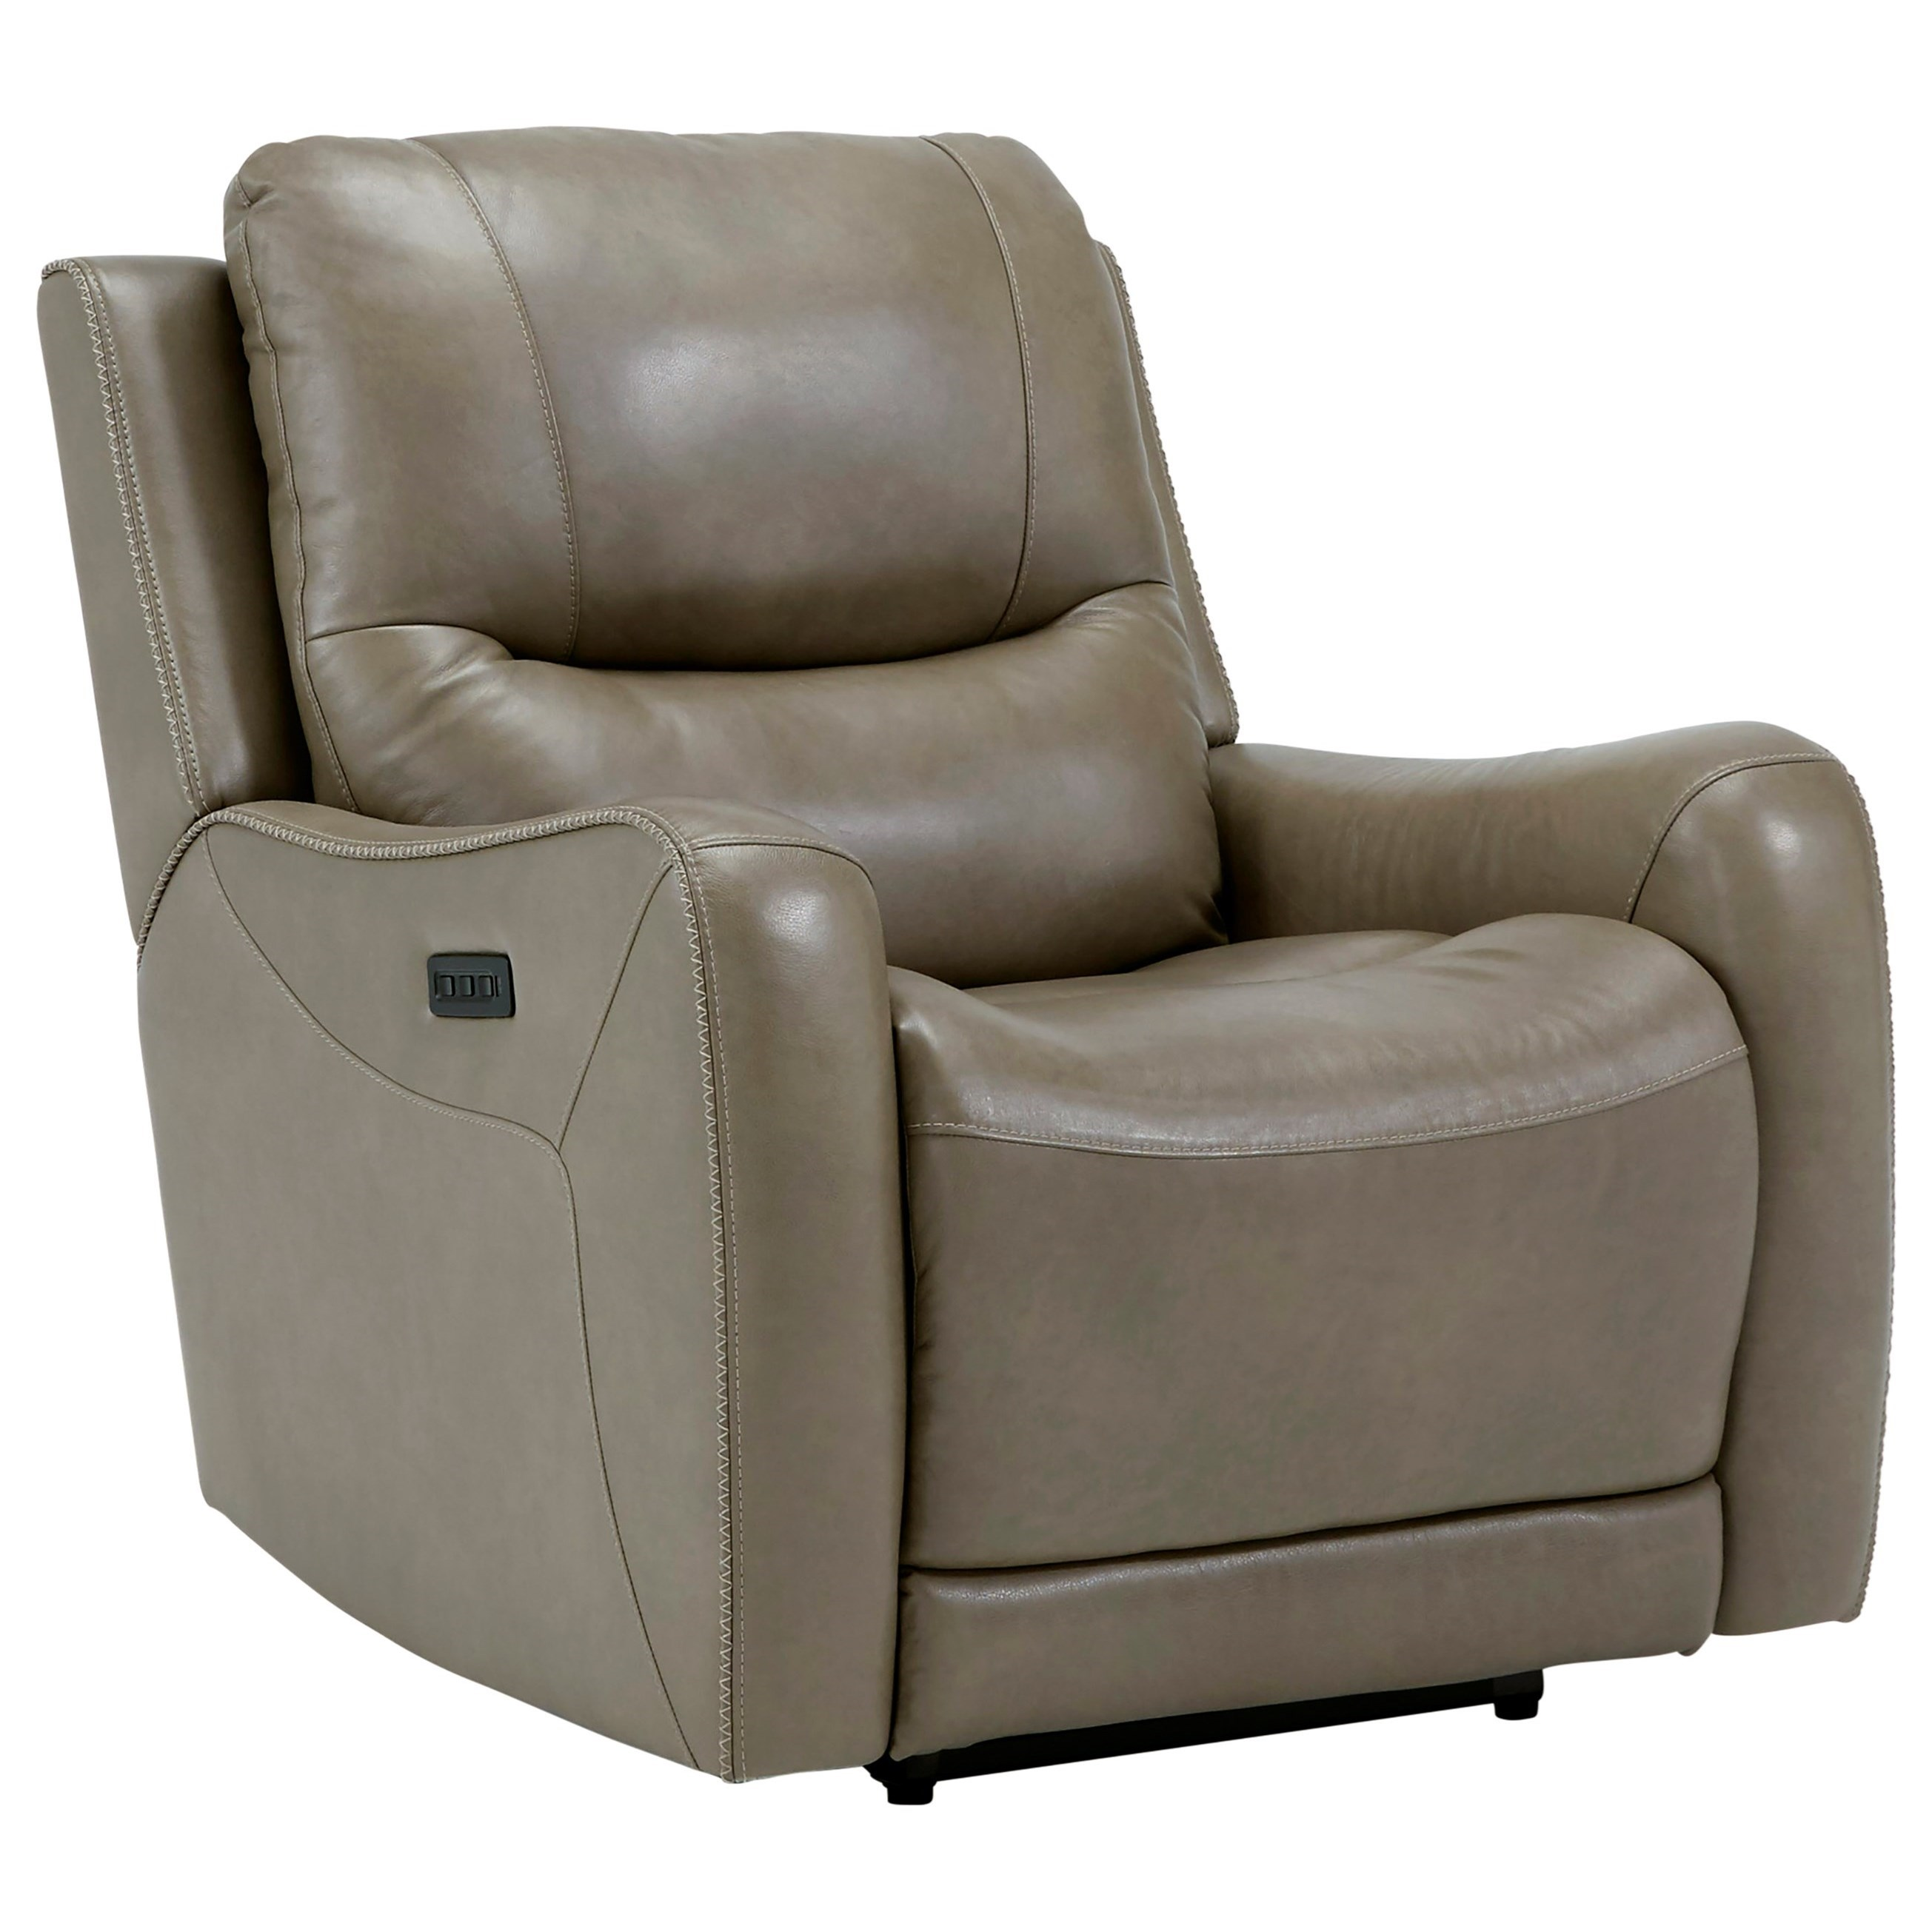 Giselle Heat/Massage/PWR Headrest Recliner by Signature at Walker's Furniture